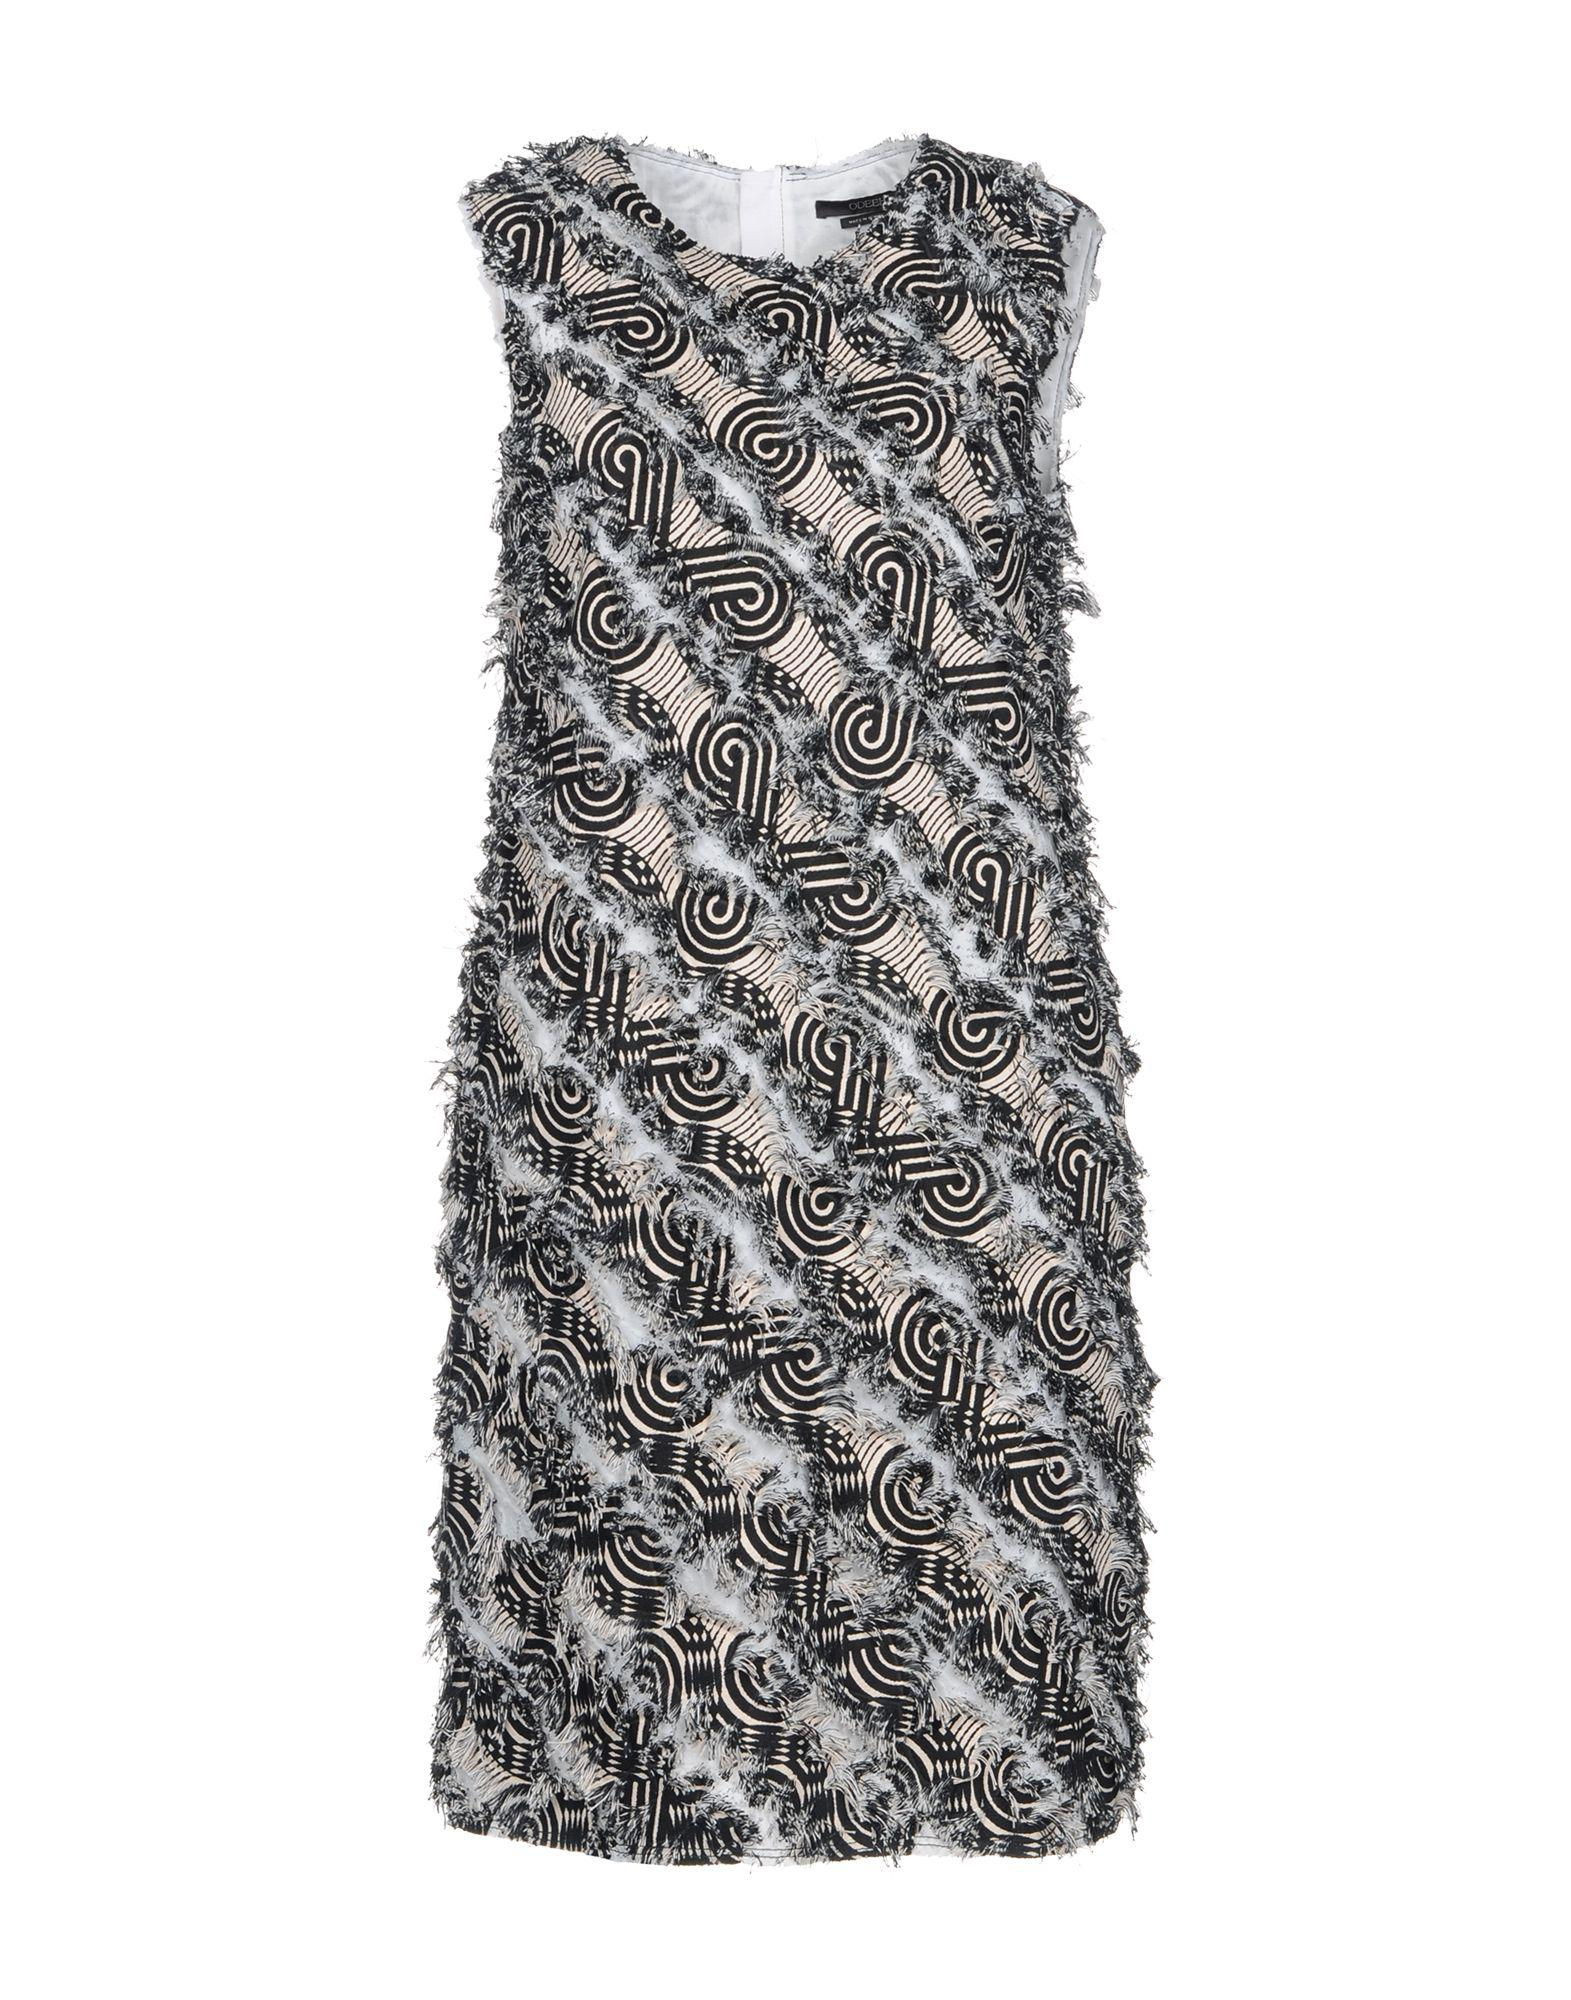 DRESSES - Short dresses Odeeh Clearance Inexpensive Outlet Low Price Online Shop Cheap Shop Offer Authentic 3v4jsm